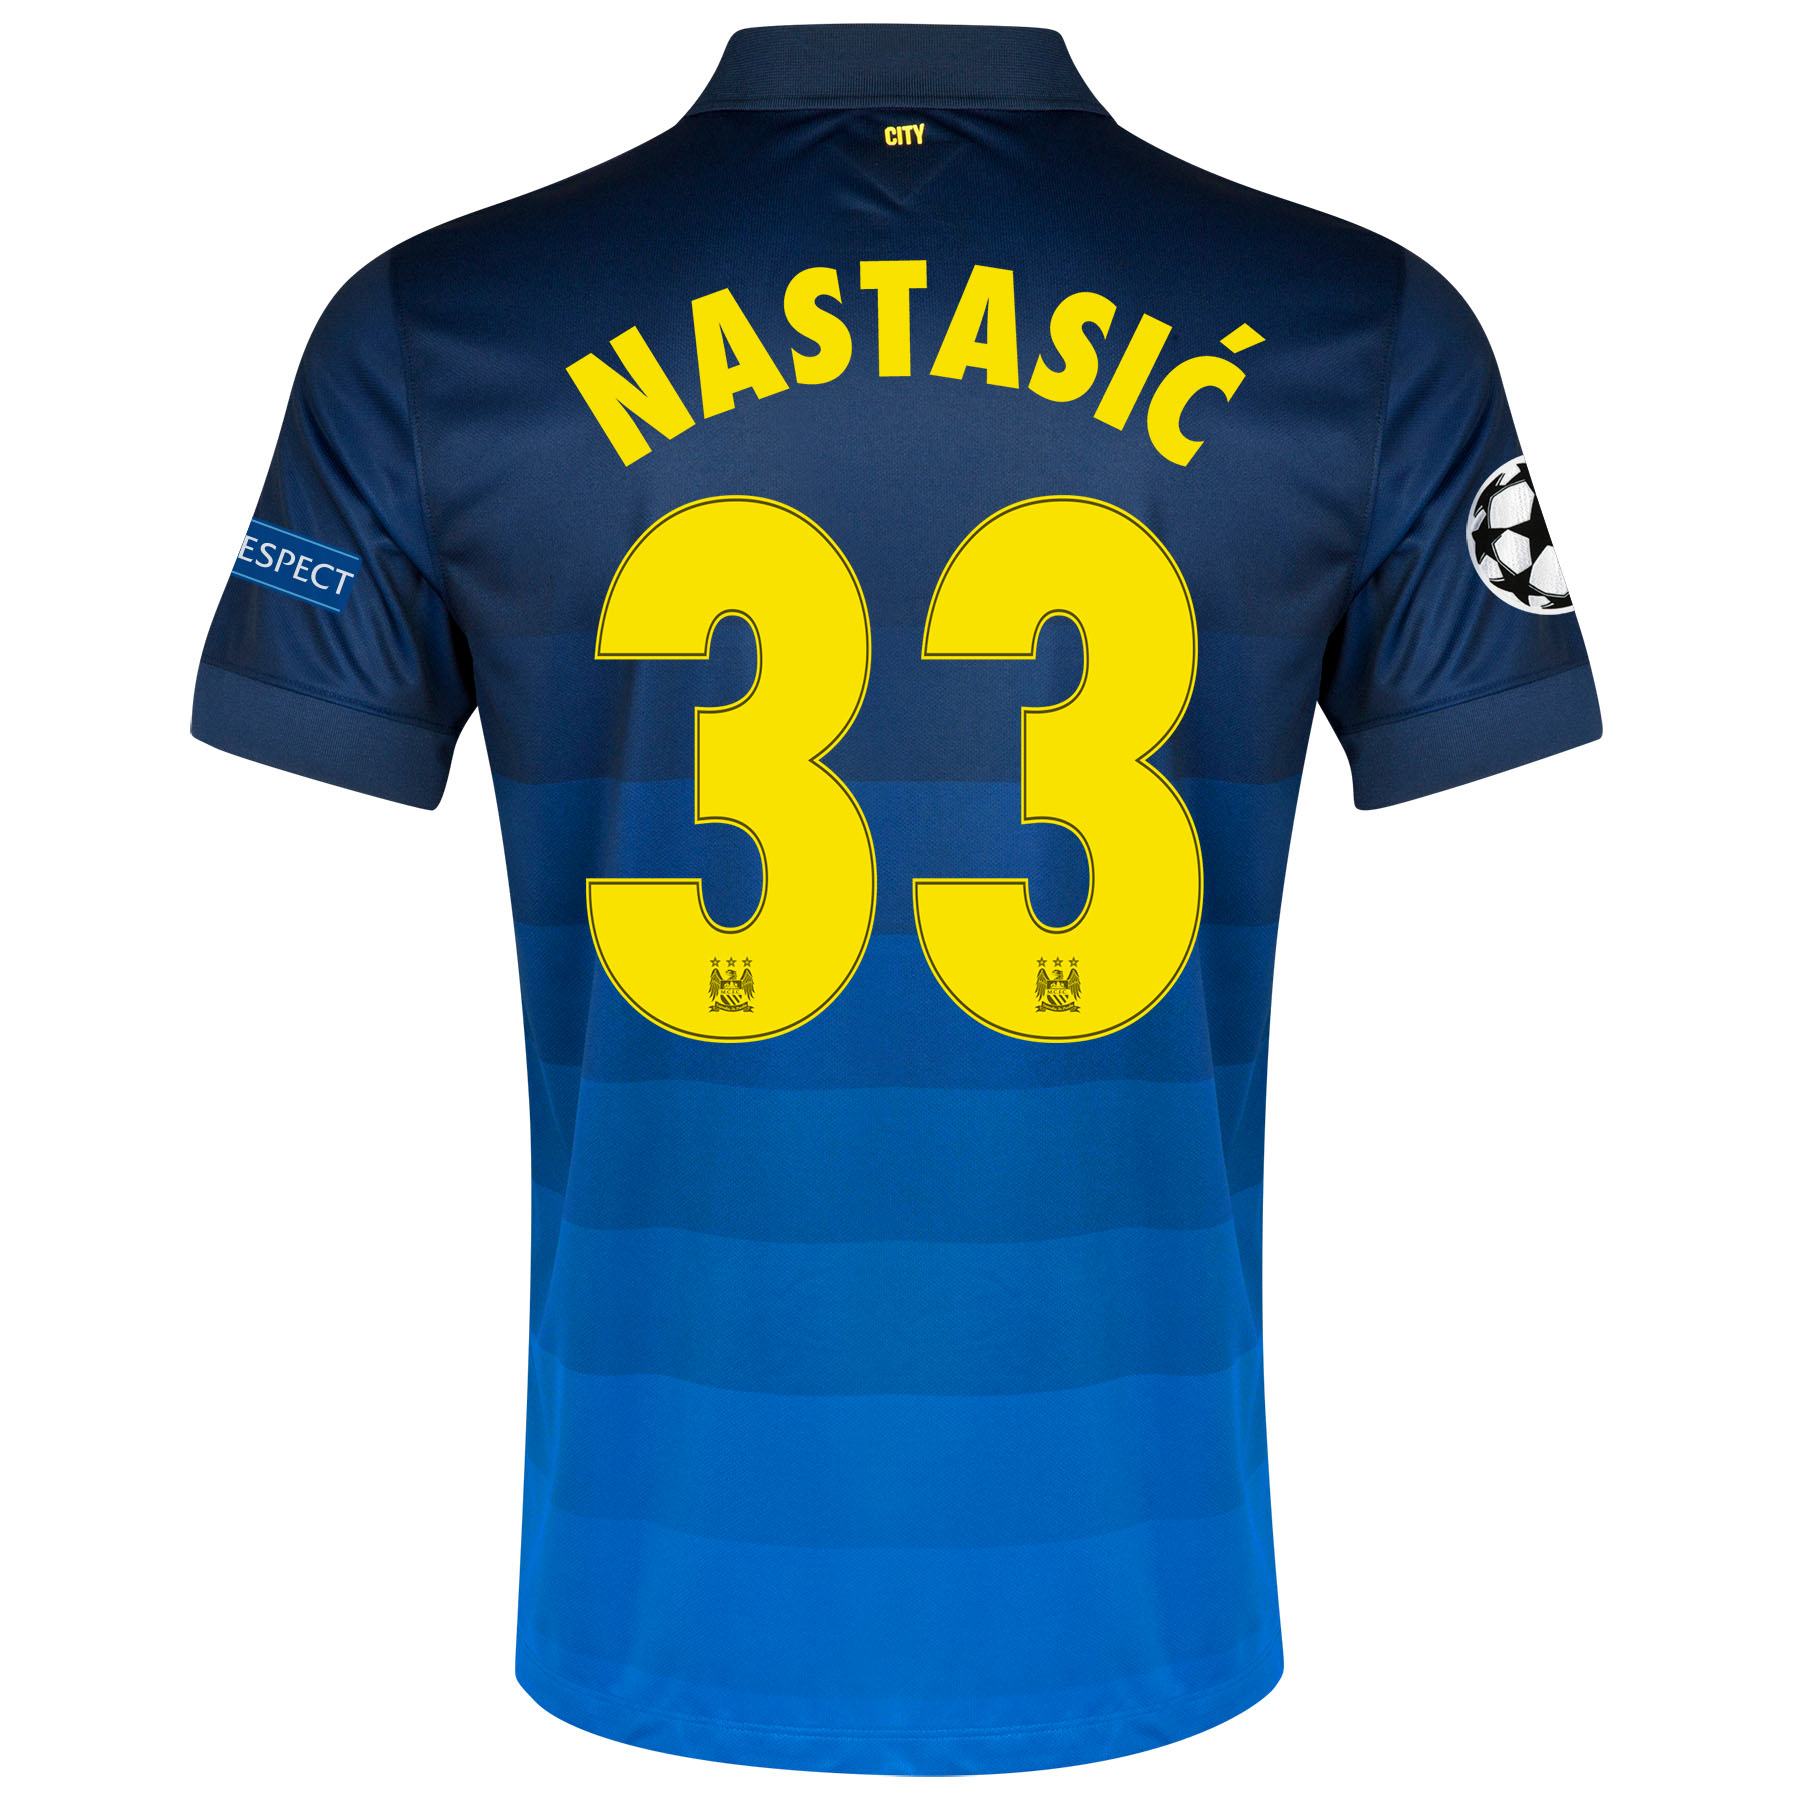 Manchester City UEFA Champions League Away Shirt 2014/15 with Nastasic 33 printing